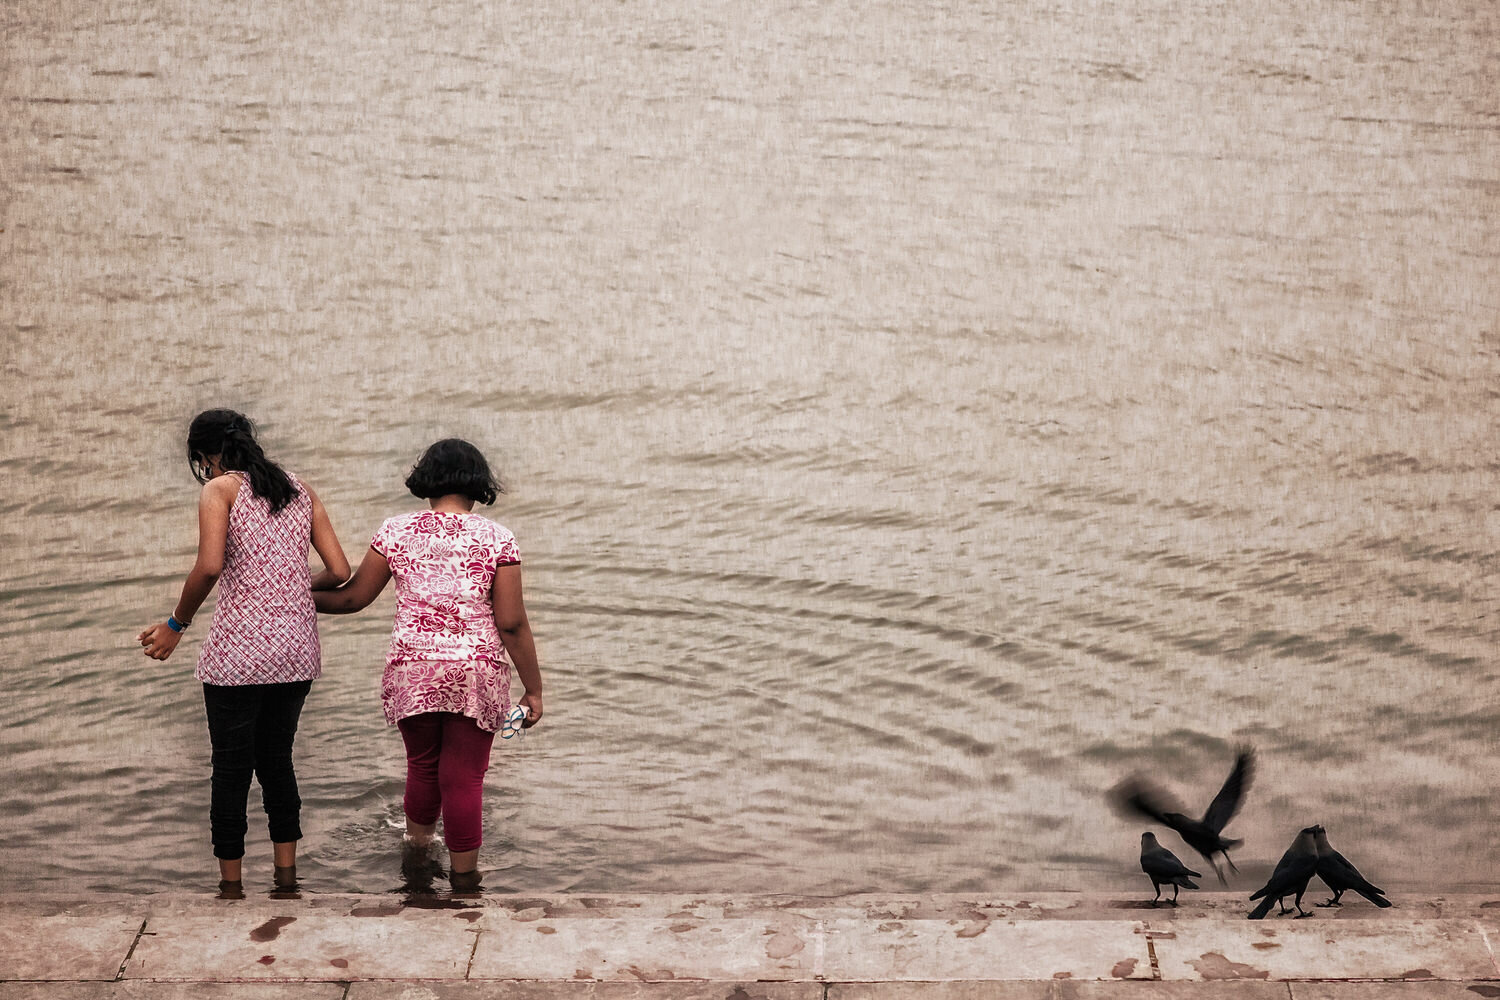 Two girls step anxiously into the waters of the Hooghly River, Kolkata.